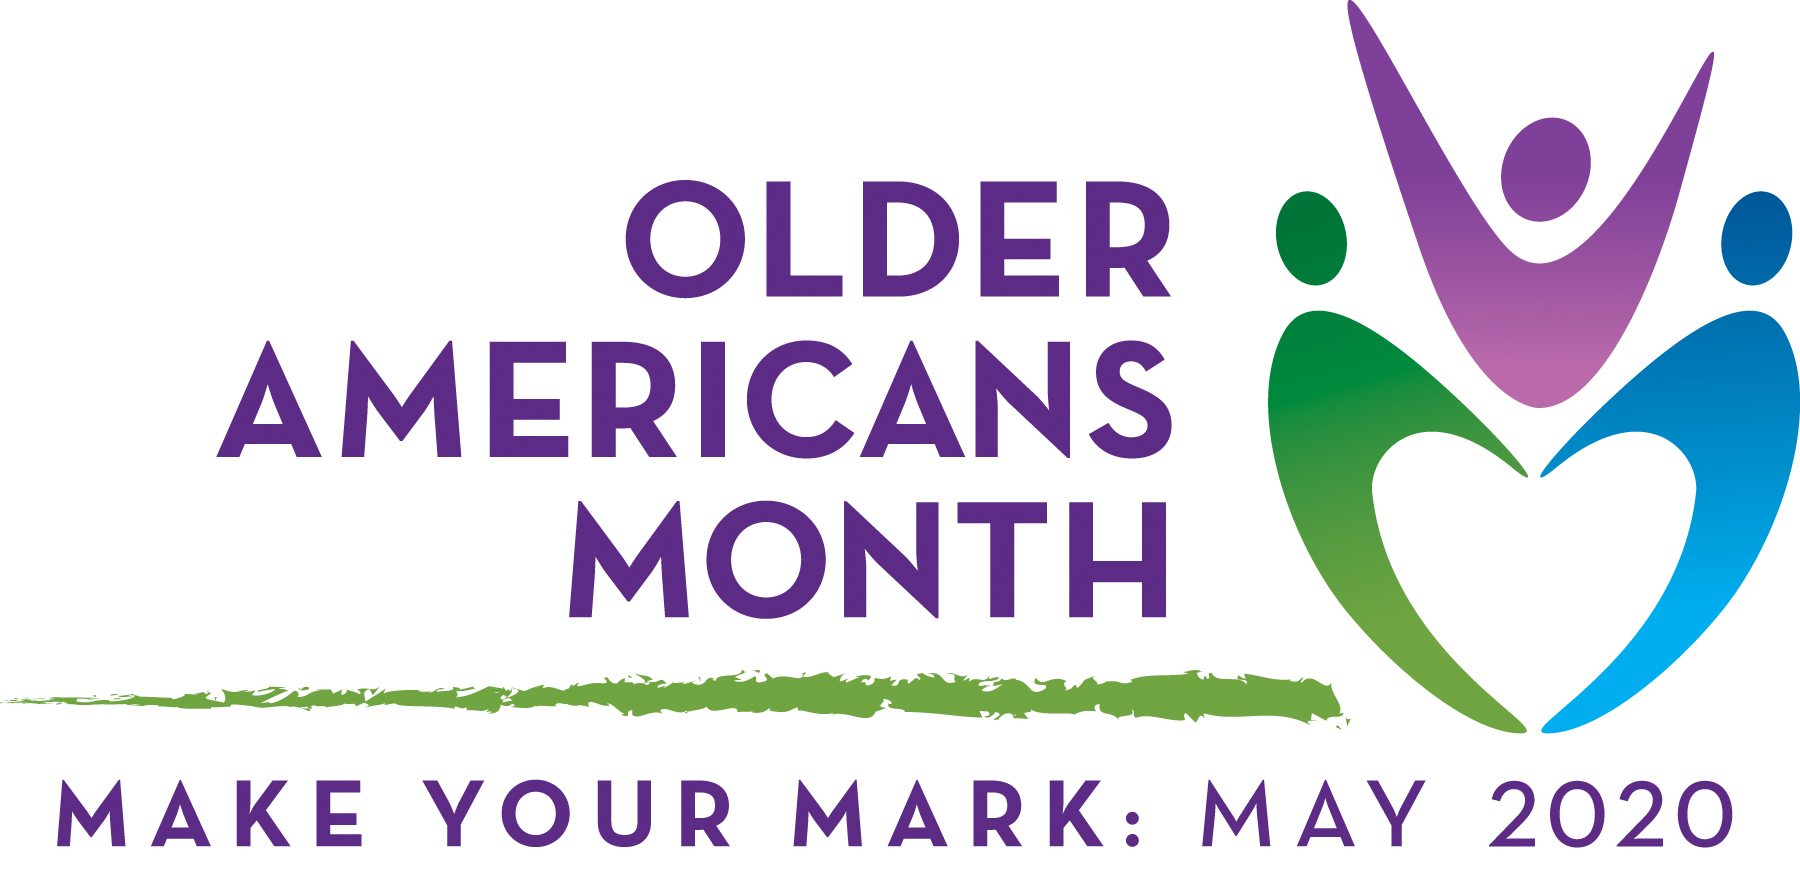 Older Americans Month 2020 logo: Make Your Mark